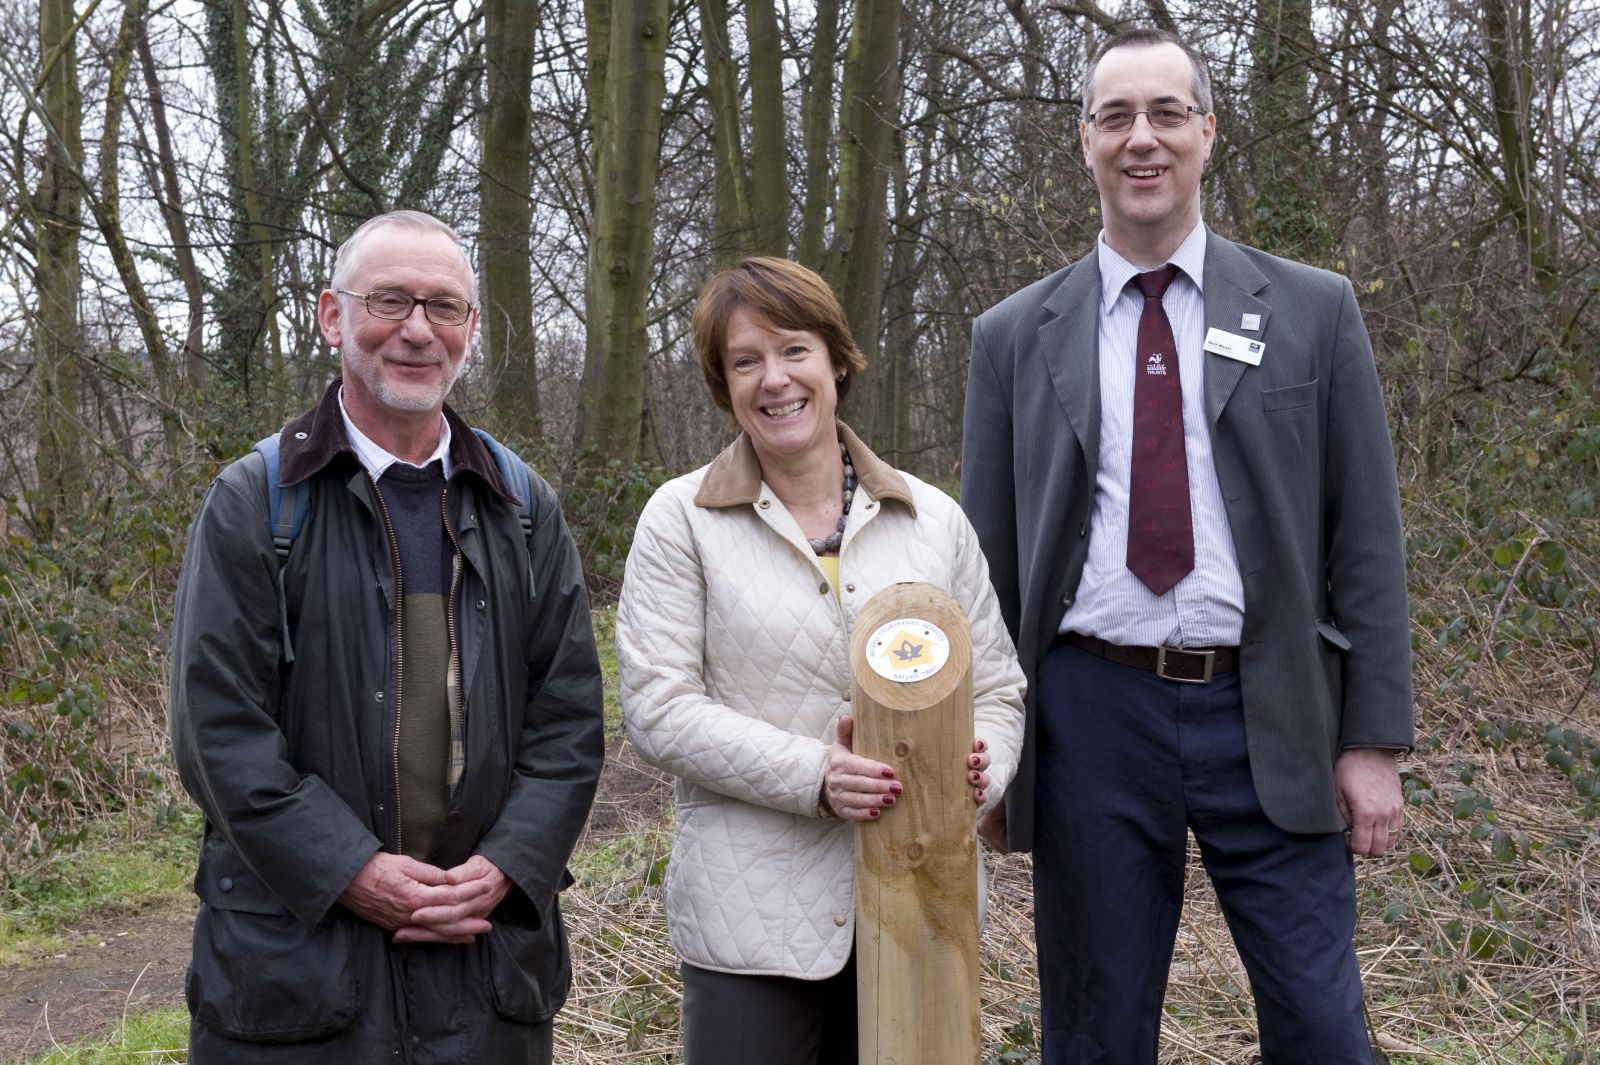 John Lawton, Caroline Spelman, Neil Wyatt at the launch of teh Birmingham and Black Country Nature Improvement Area